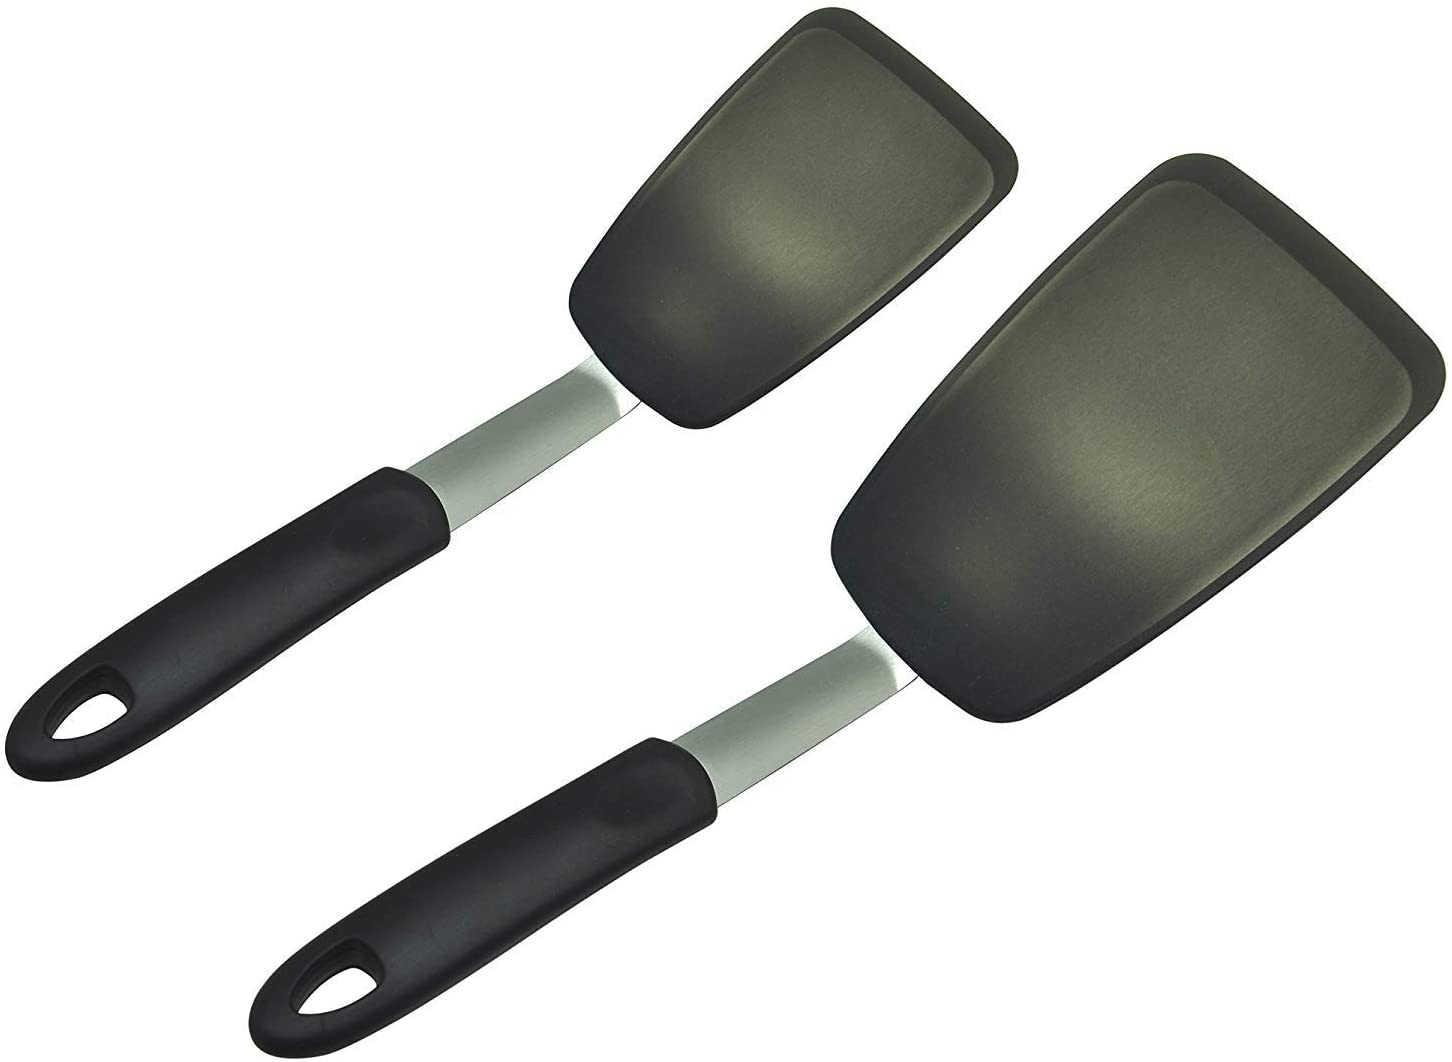 Unicook 2 Pack Flexible Silicone Spatula, Turner, 600F Heat Resistant, Ideal for Flipping Eggs, Burgers, Crepes and More, FDA Approved and LFGB Certified, Black